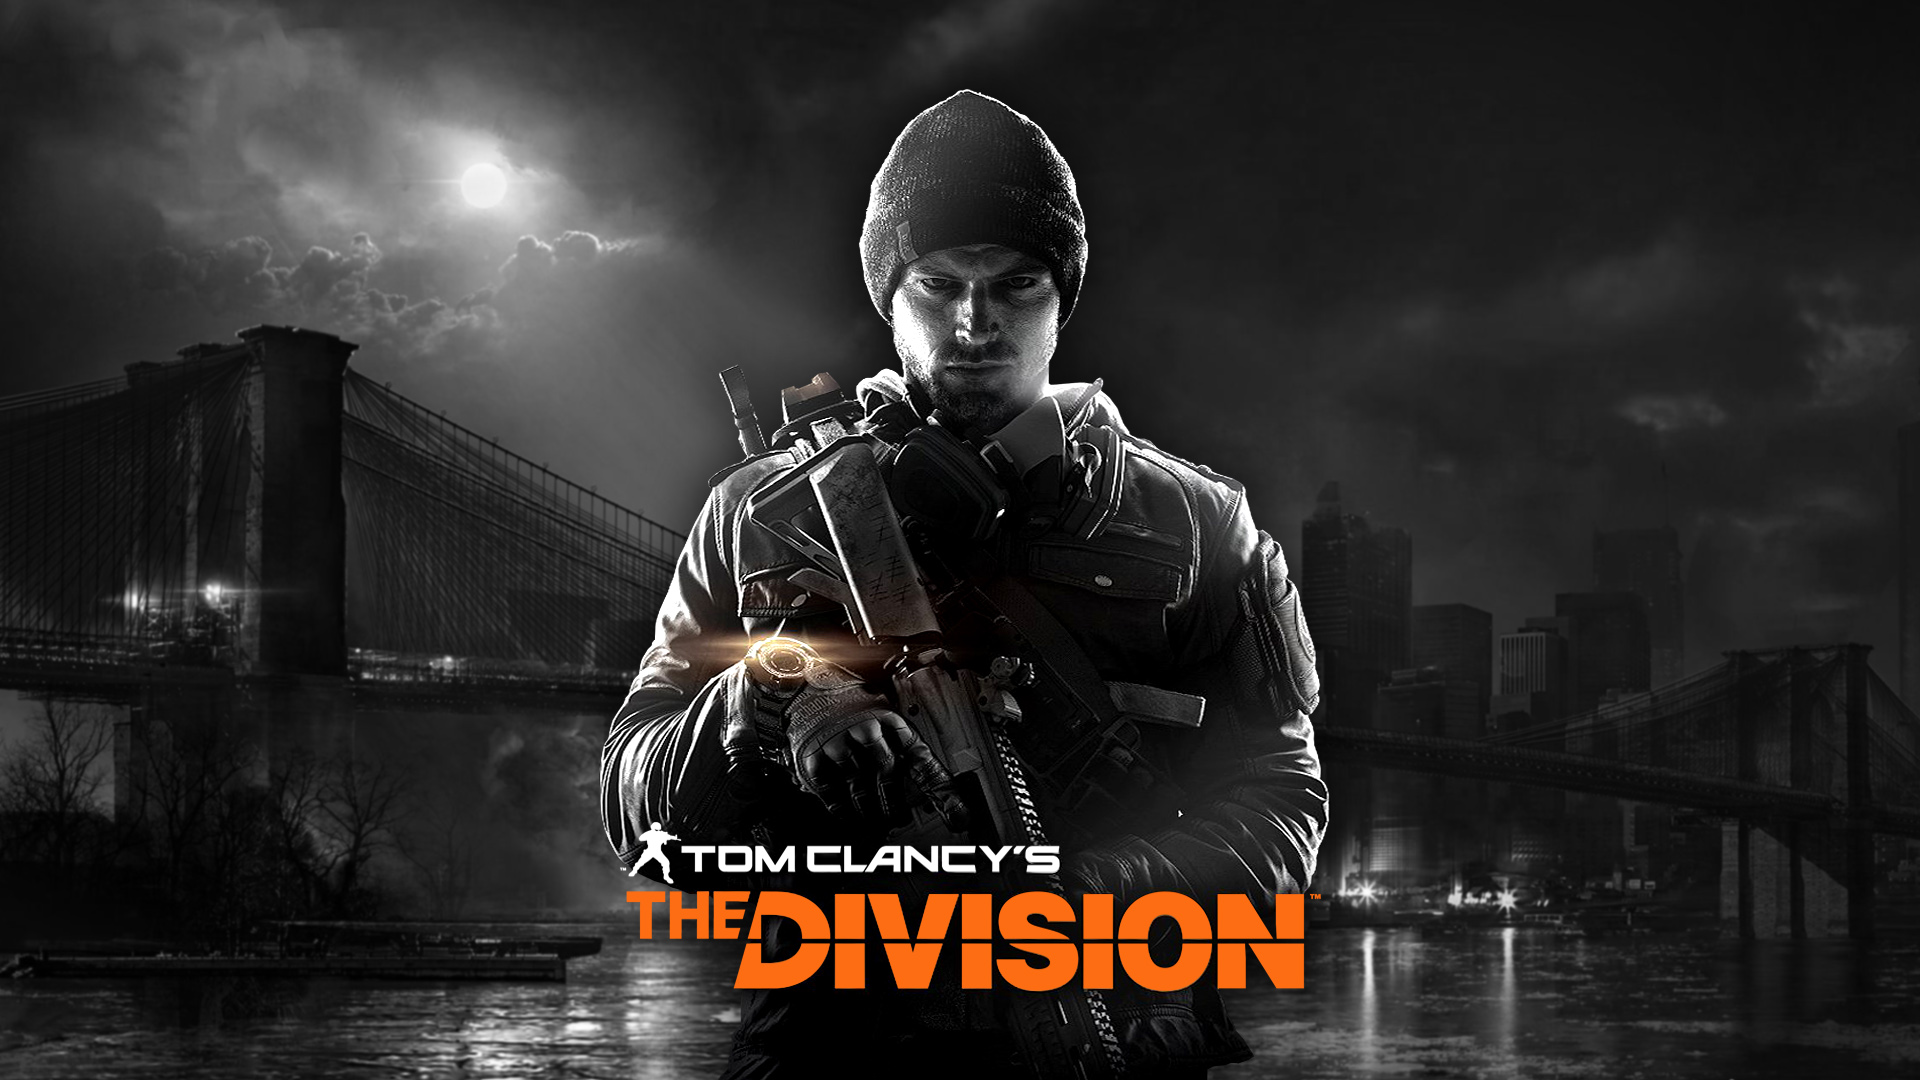 Tom Clancys The Division Wallpapers HD   InspirationSeekcom 1920x1080